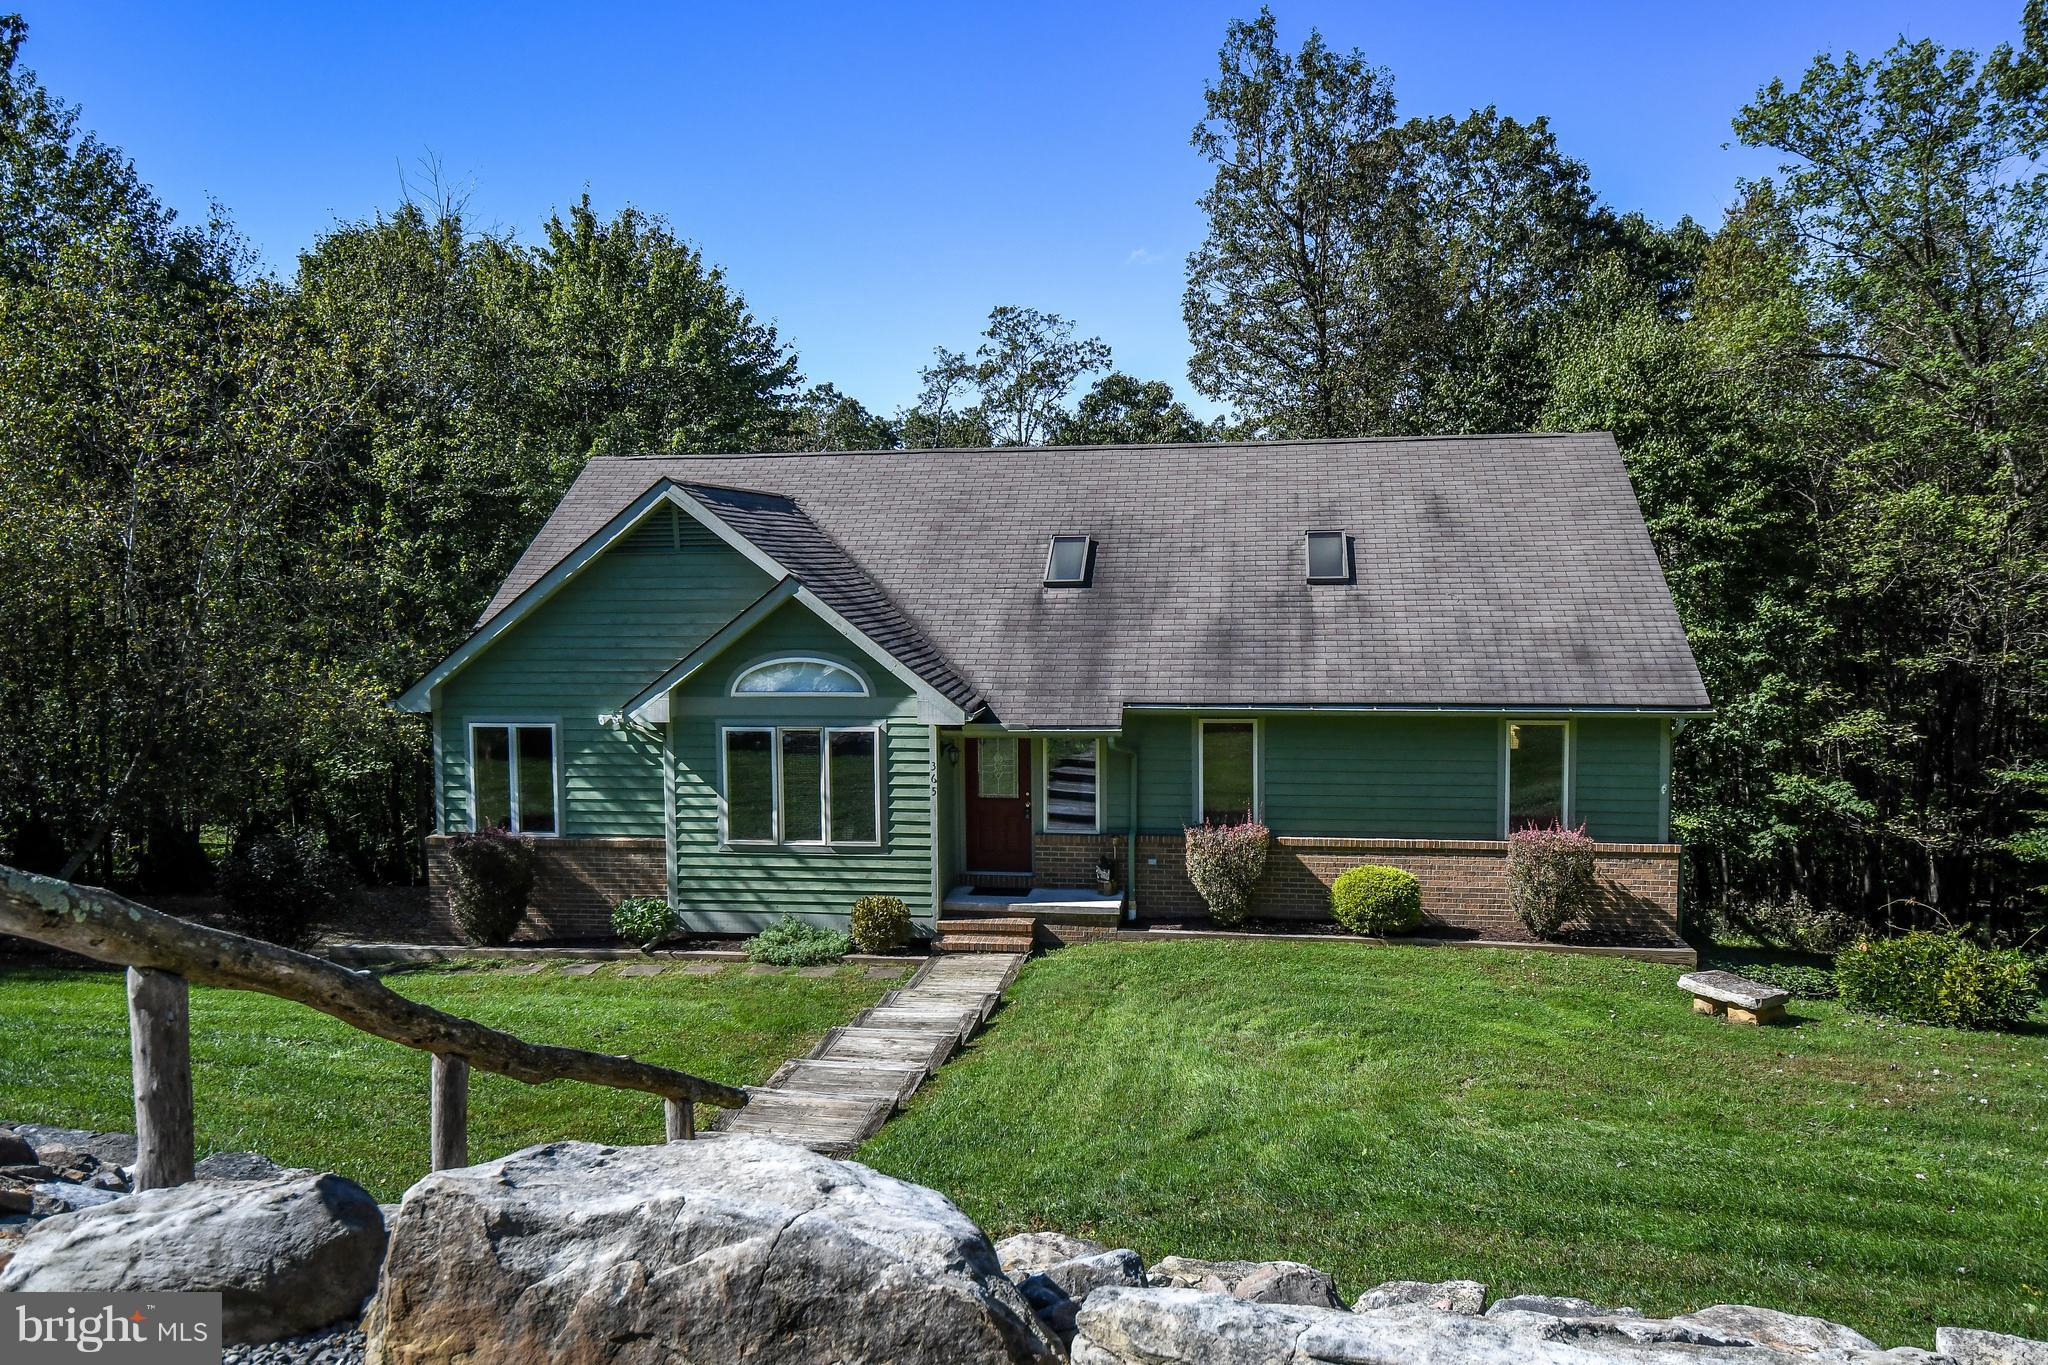 365 PINNACLE ROAD, SWANTON, MD 21561